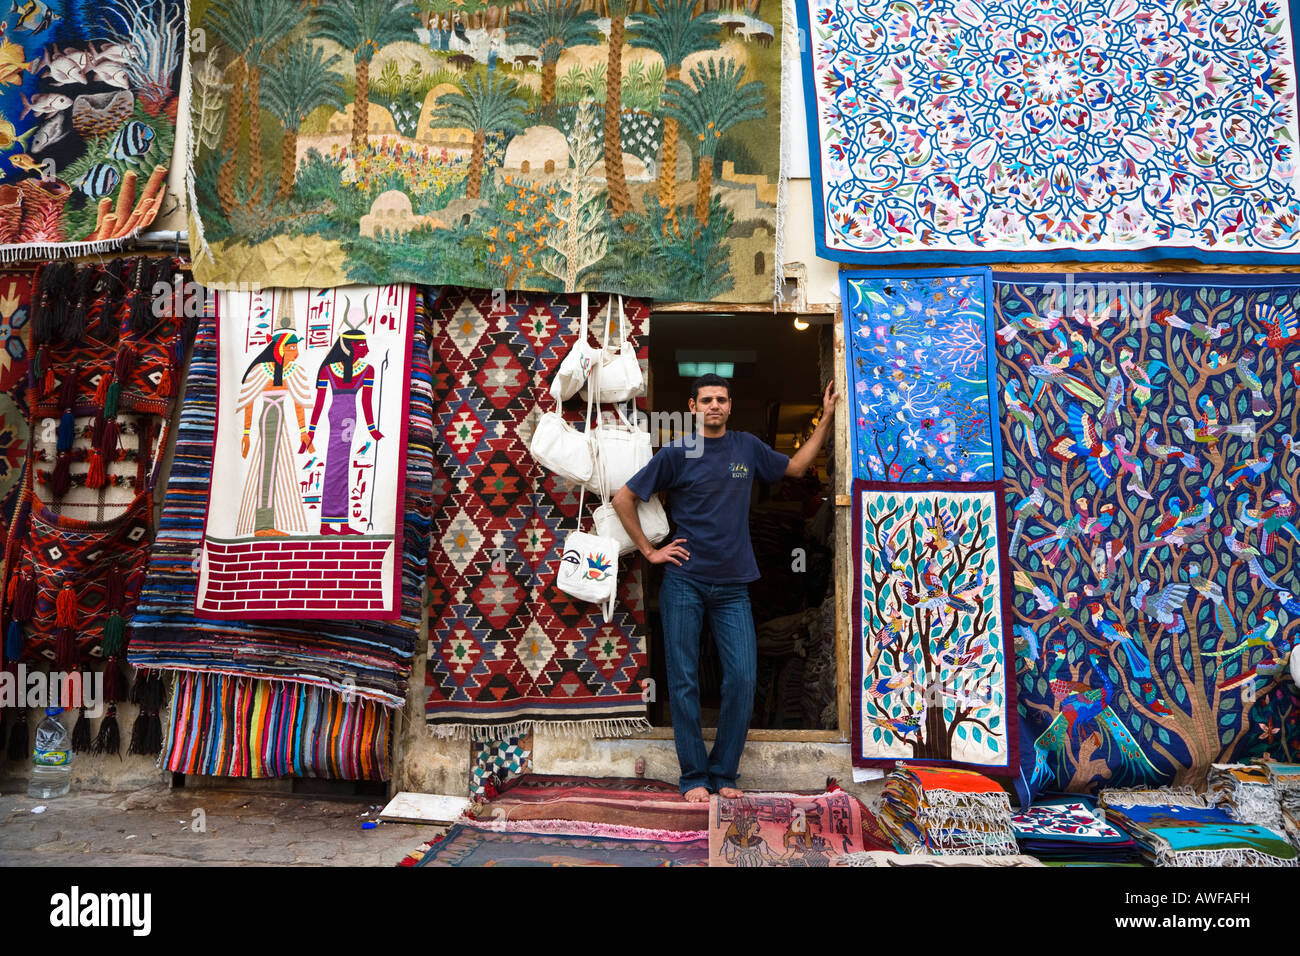 Carpet shop and owner Old Sharm Sinai Egypt - Stock Image